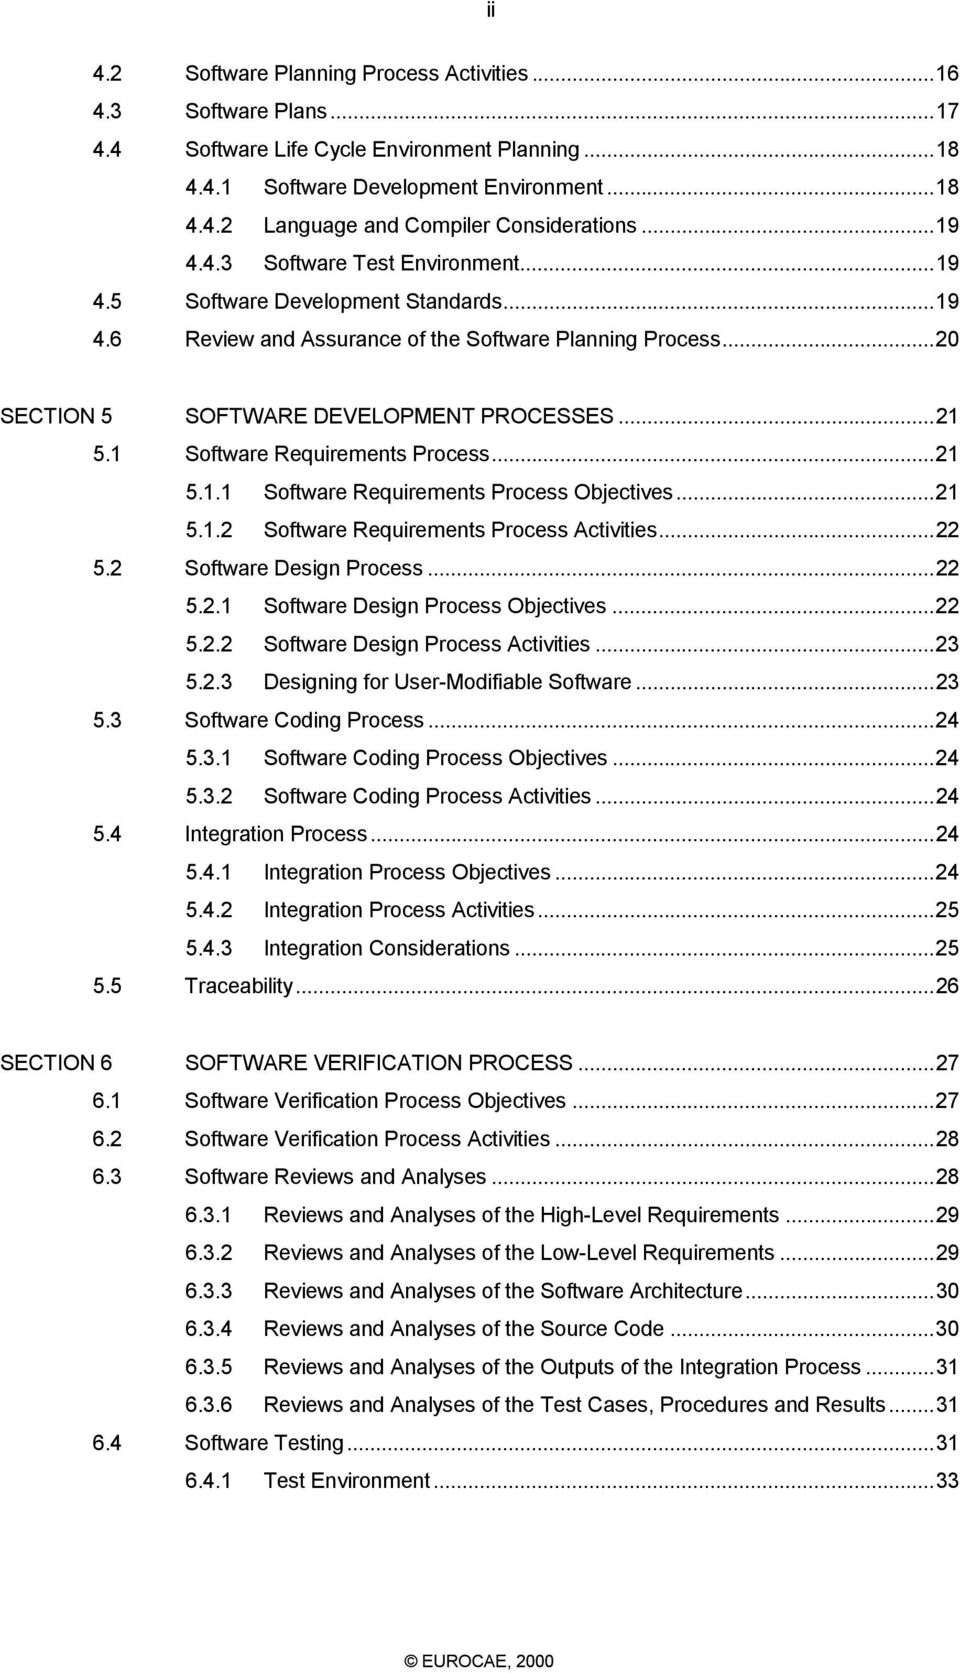 1 Software Requirements Process...1 5.1.1 Software Requirements Process Objectives...1 5.1. Software Requirements Process Activities... 5. Software Design Process... 5..1 Software Design Process Objectives.